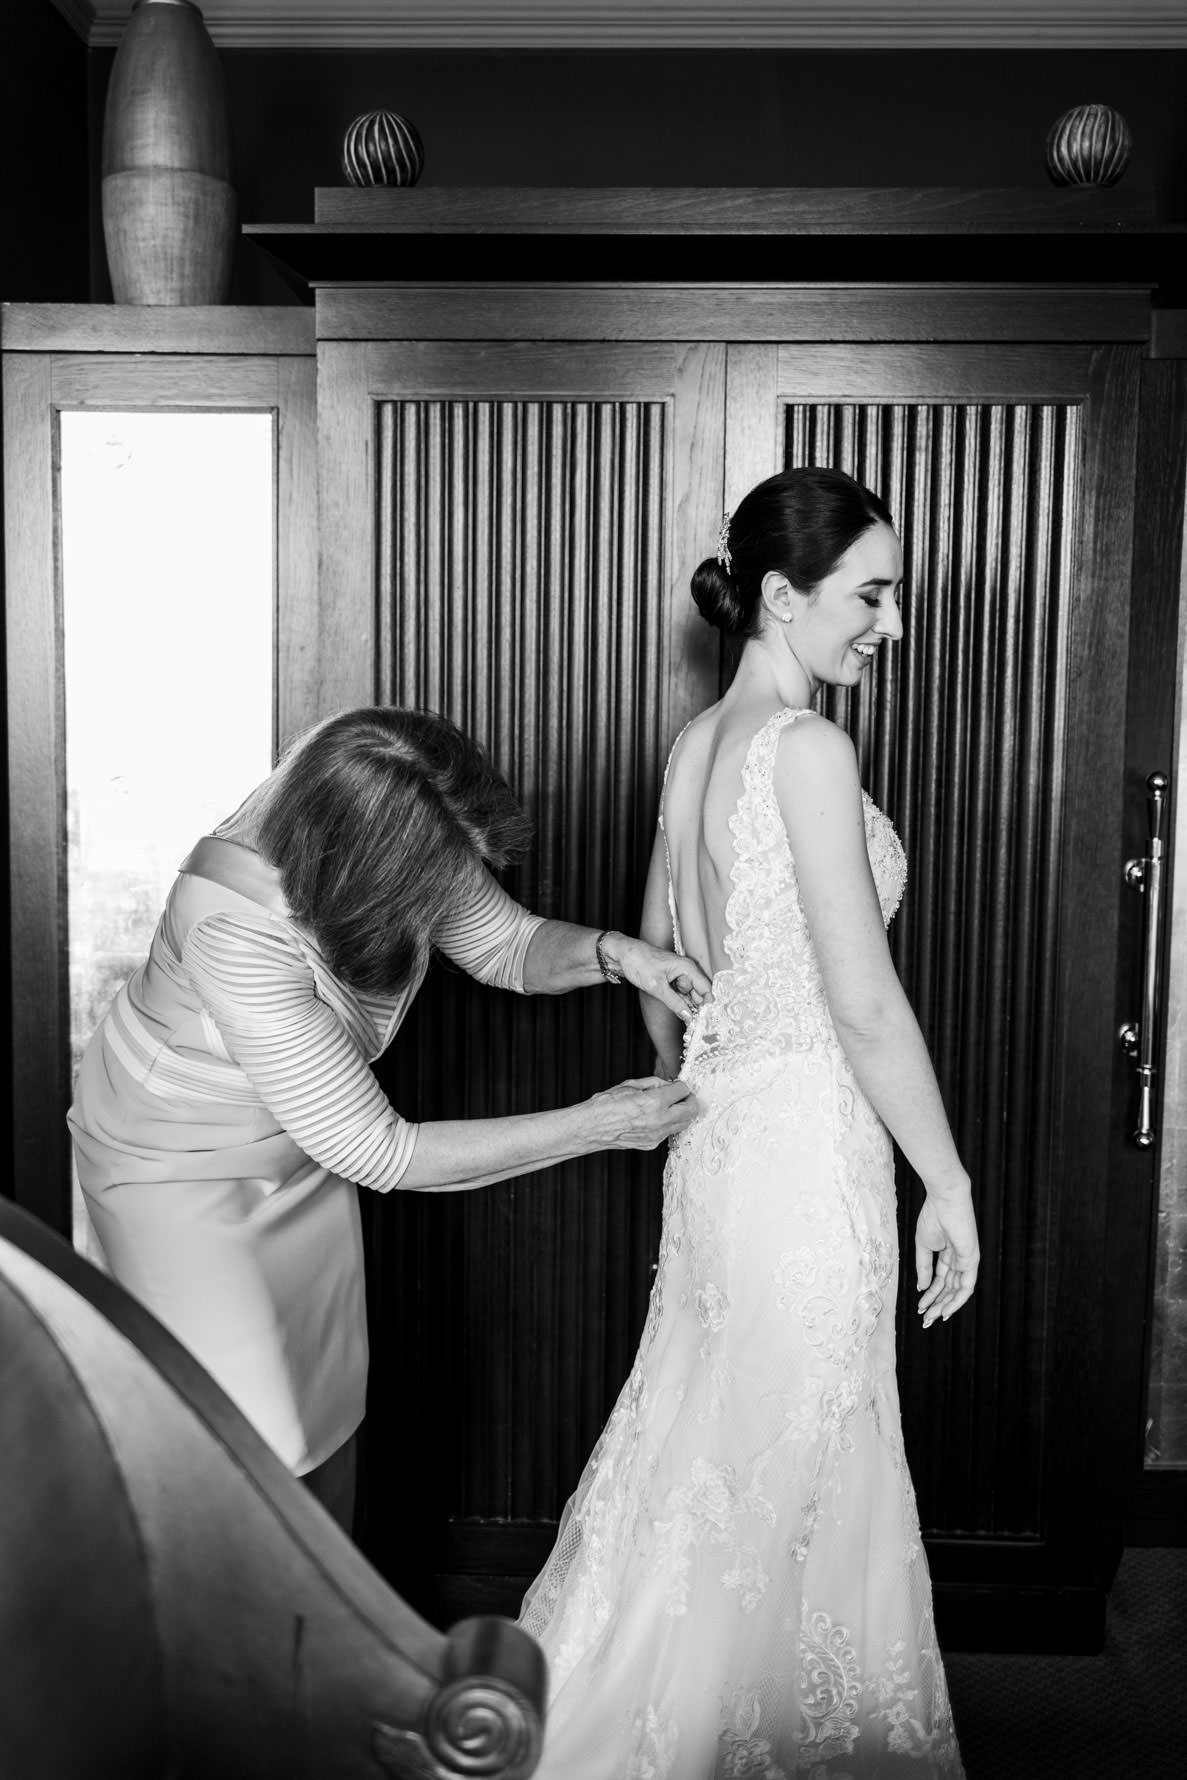 mother of the bride fastening buttons on wedding dress in black and white